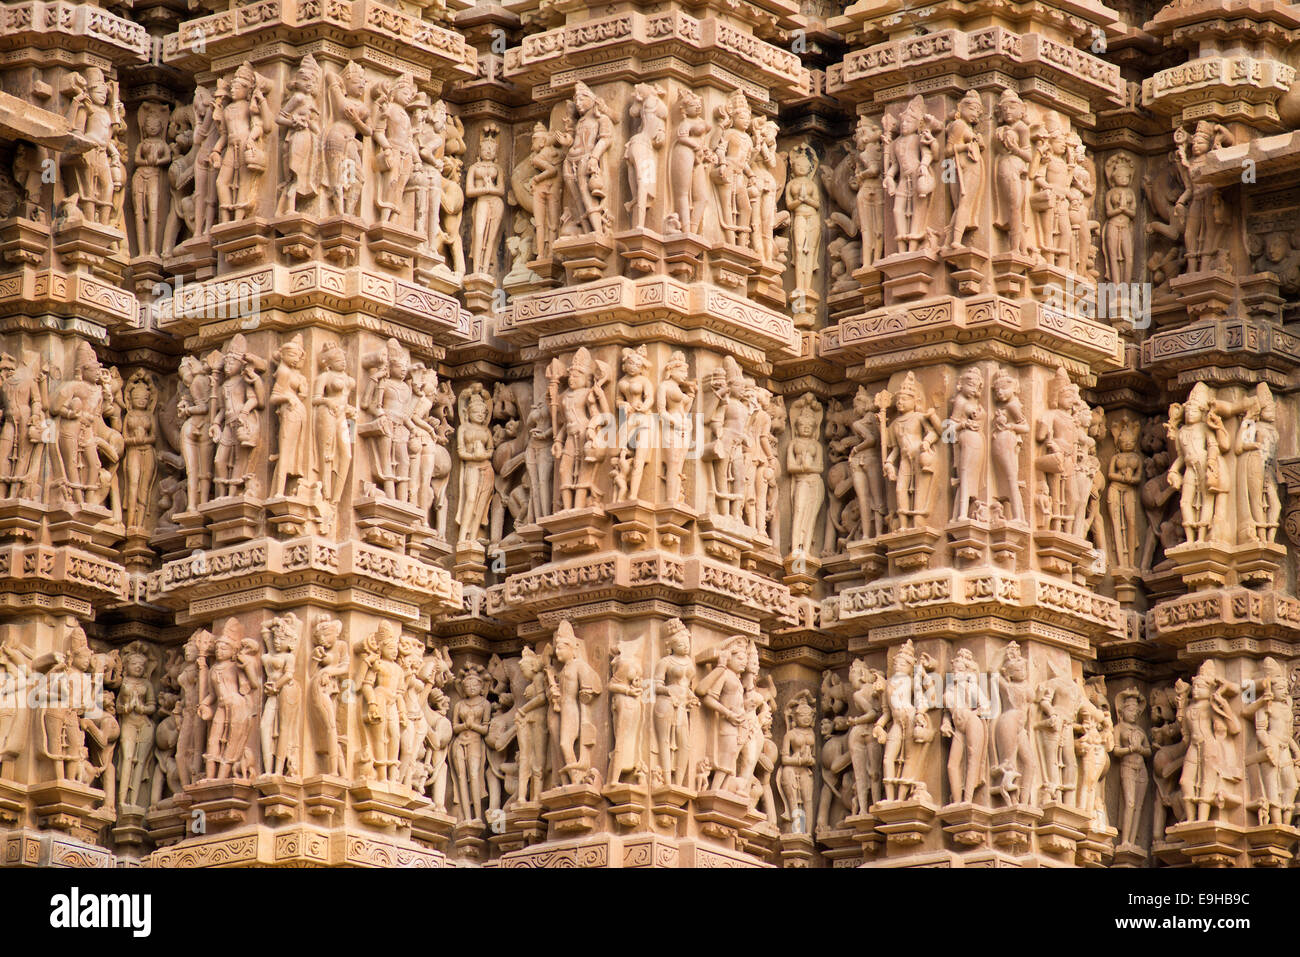 Relief with depictions of gods and men, Kandariya Mahadeva Temple, Western Group, Khajuraho Group of Monuments - Stock Image